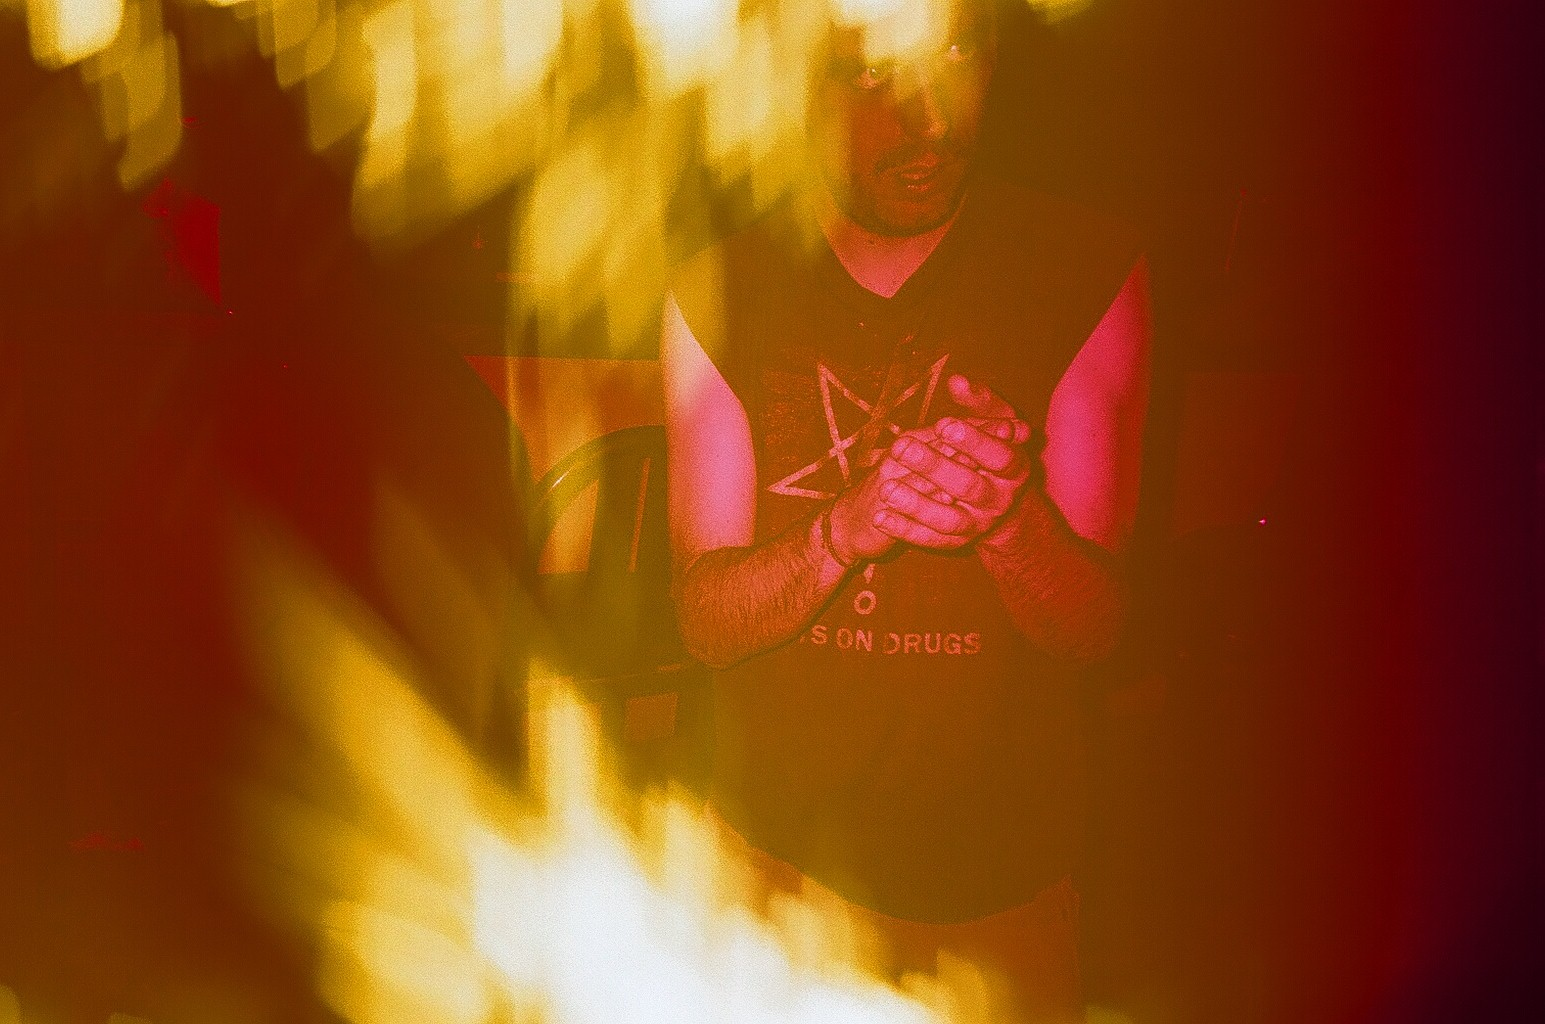 This is Matt. Or maybe Satan. No idea where the hellfire effect came from.